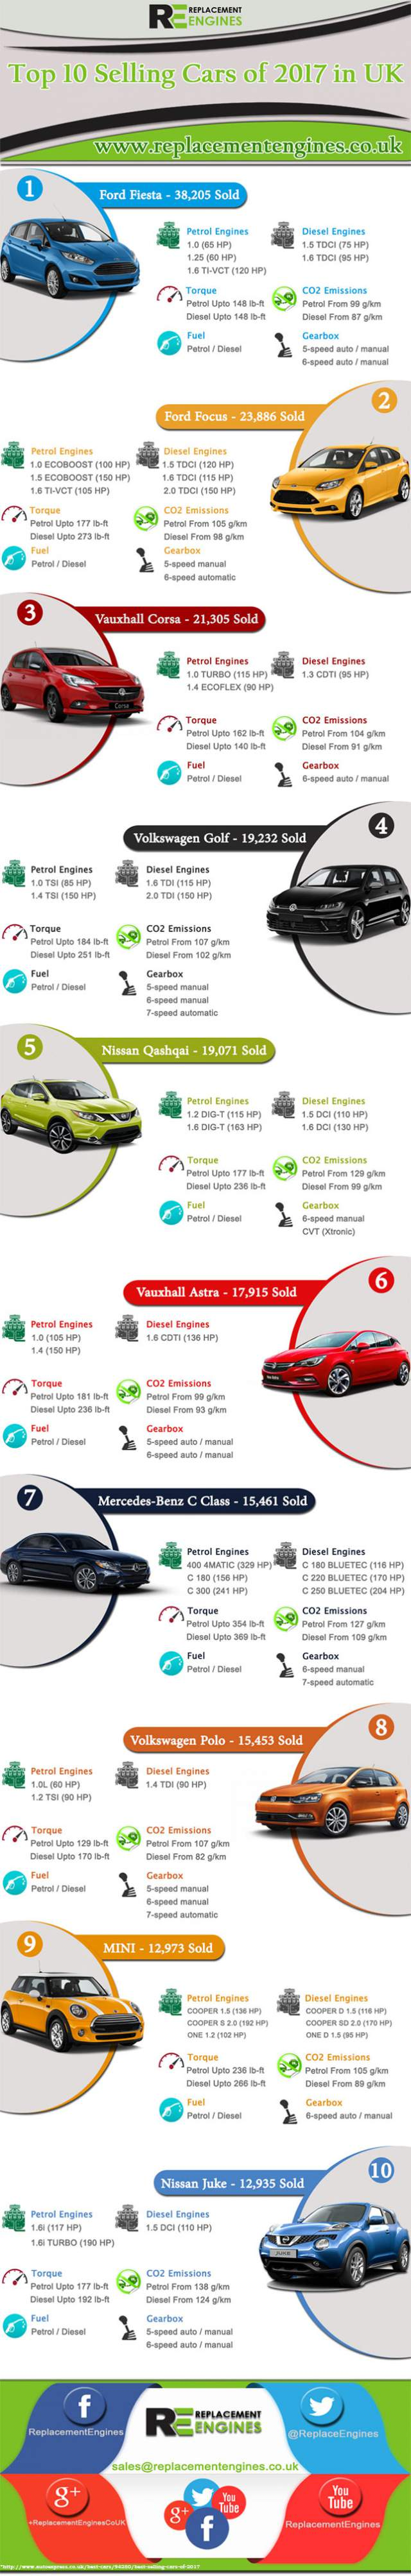 Top 10 Selling Cars